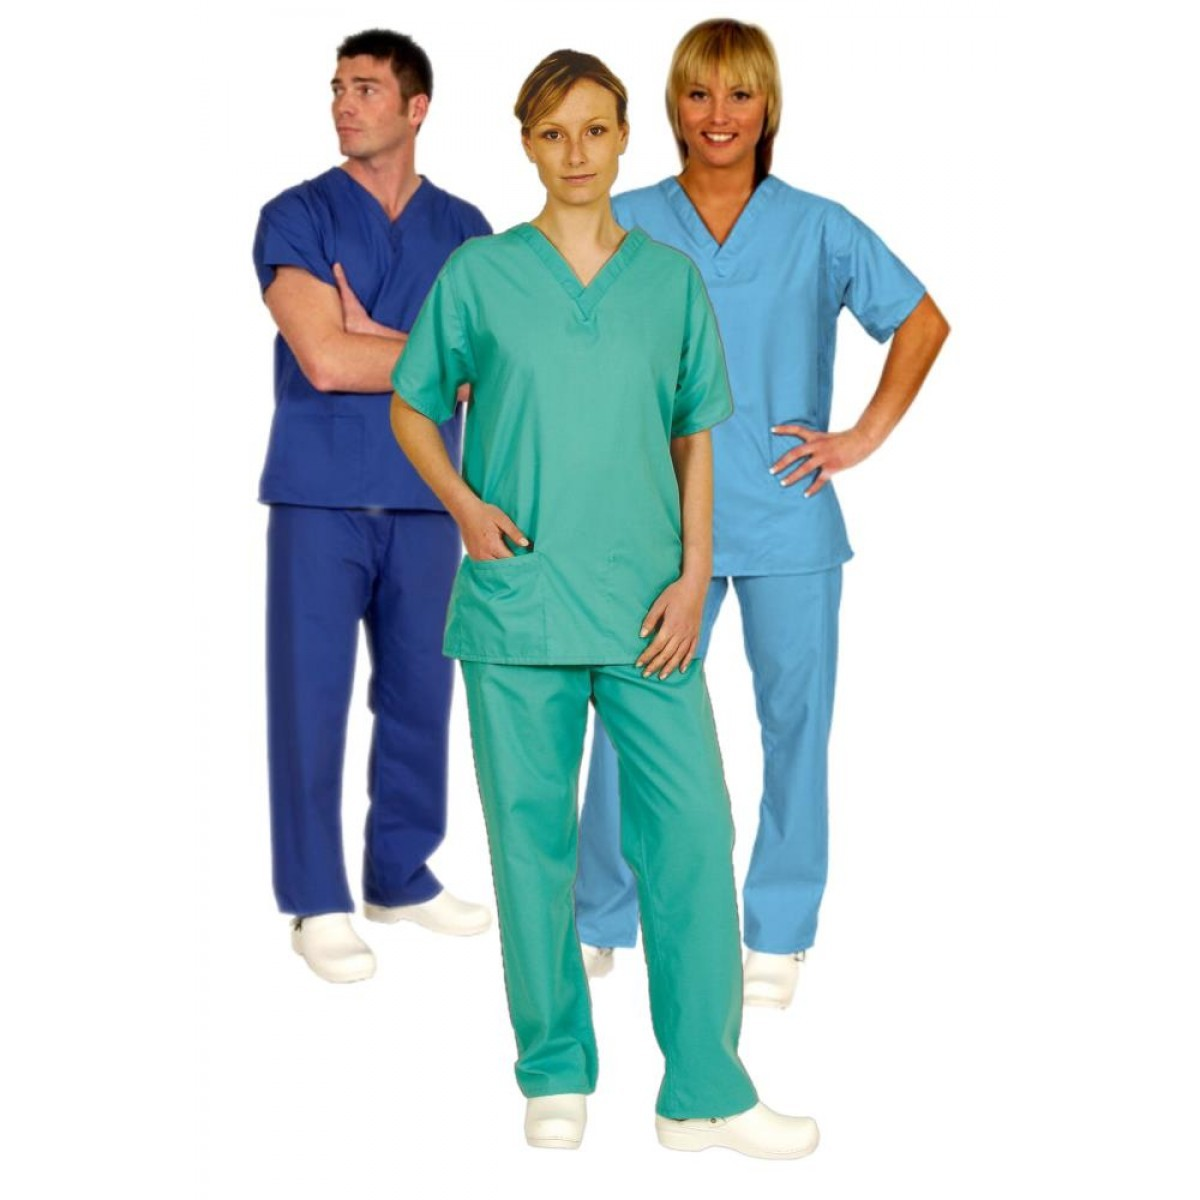 The Vet Nurse Uniform Debate Recruit4vets